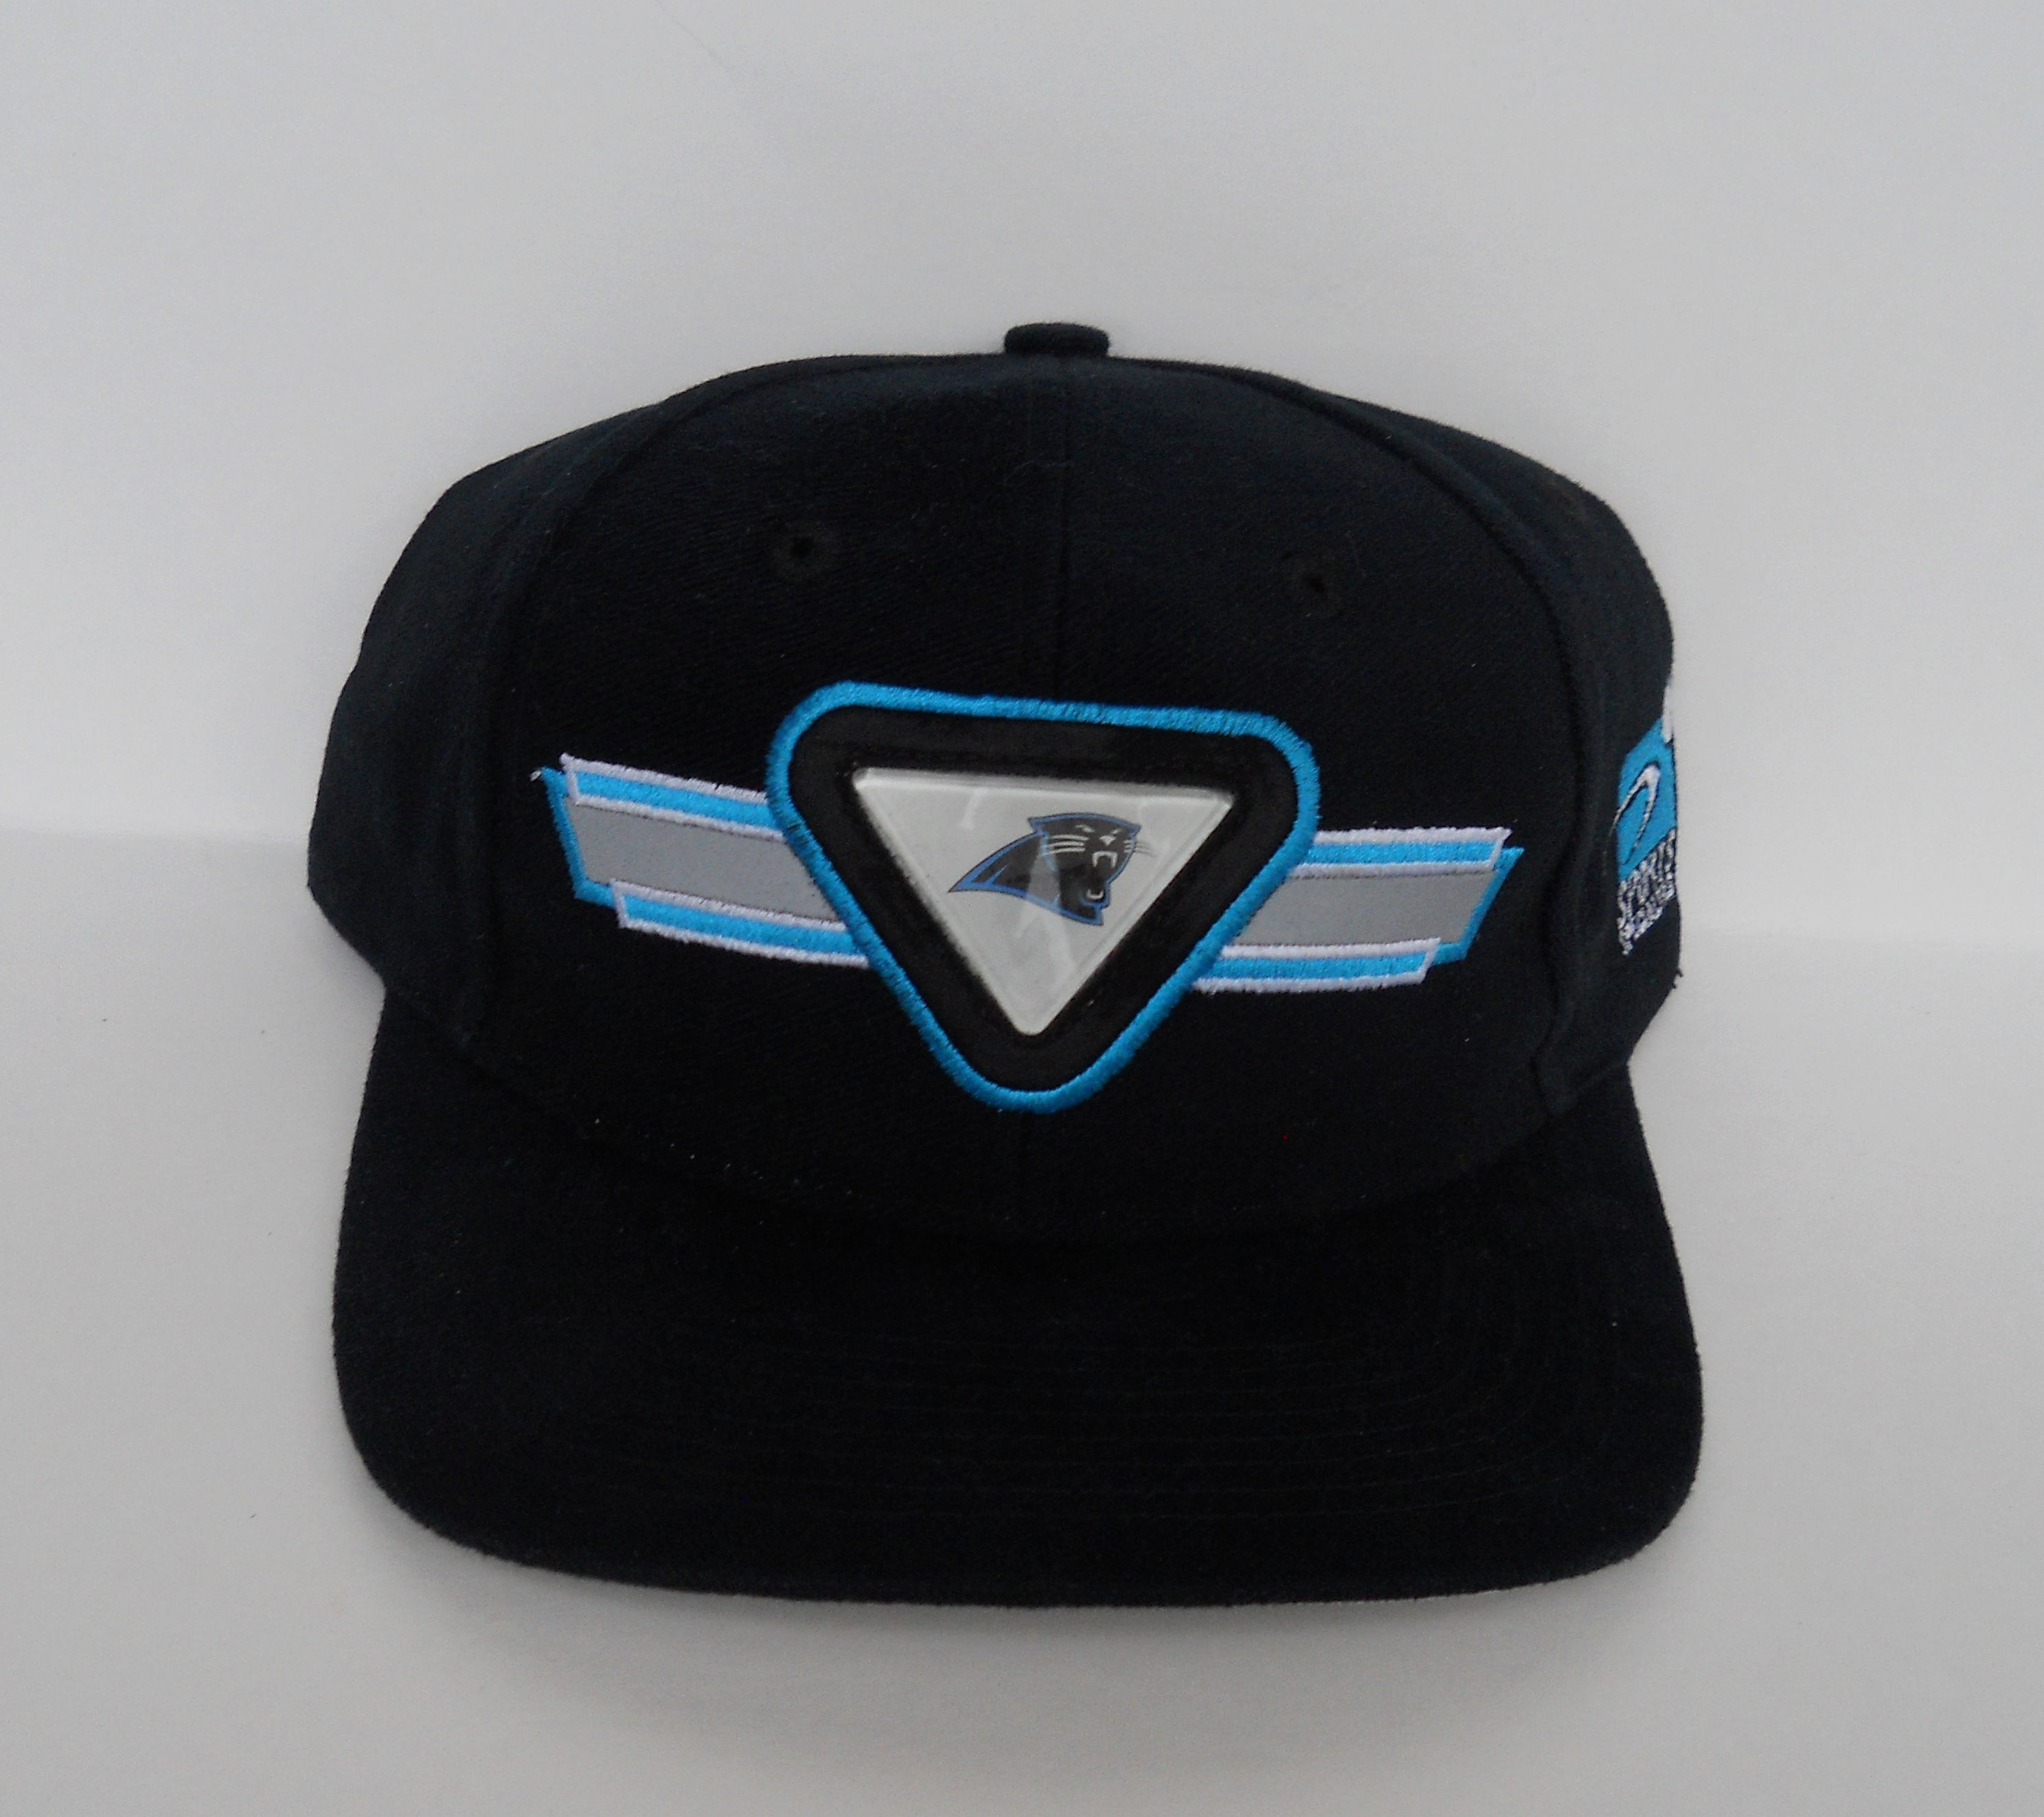 d2f6f4f6f5f Vintage late-90s Carolina Panthers Snapback by Sports Specialties  (pre-owned)